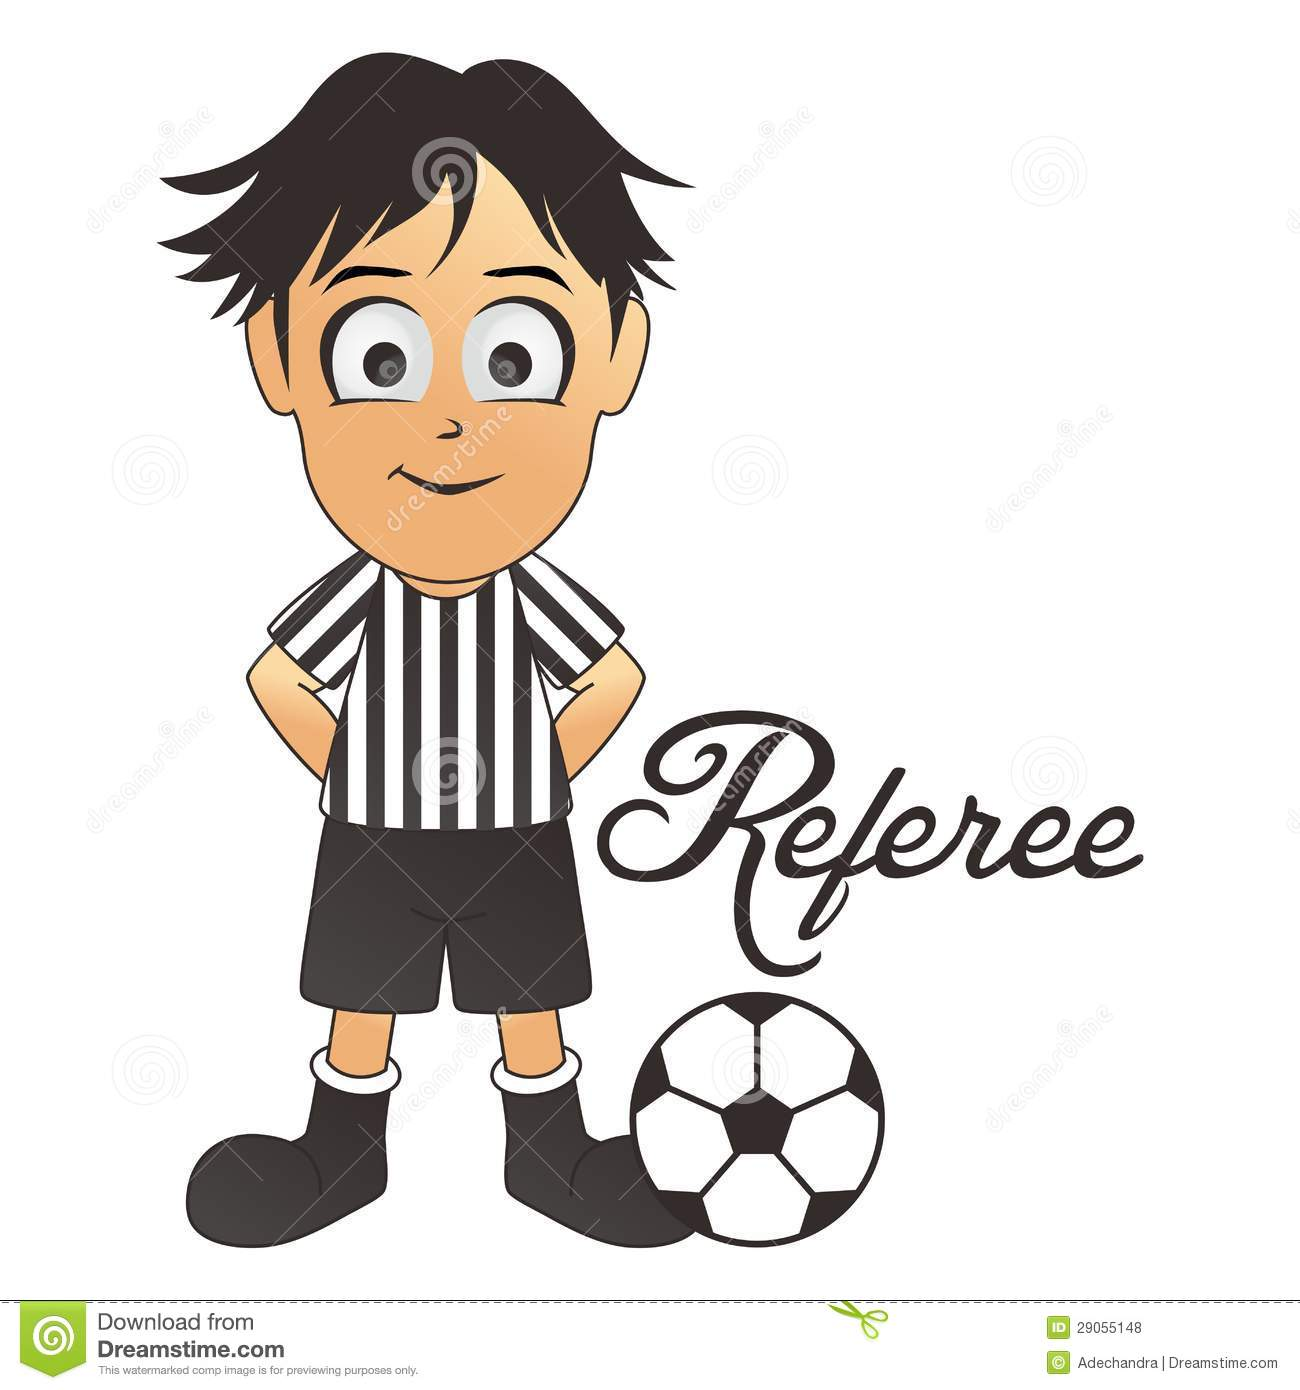 Clip Art Referee Clipart soccer referee clipart kid cartoon royalty free stock photos image 29055148